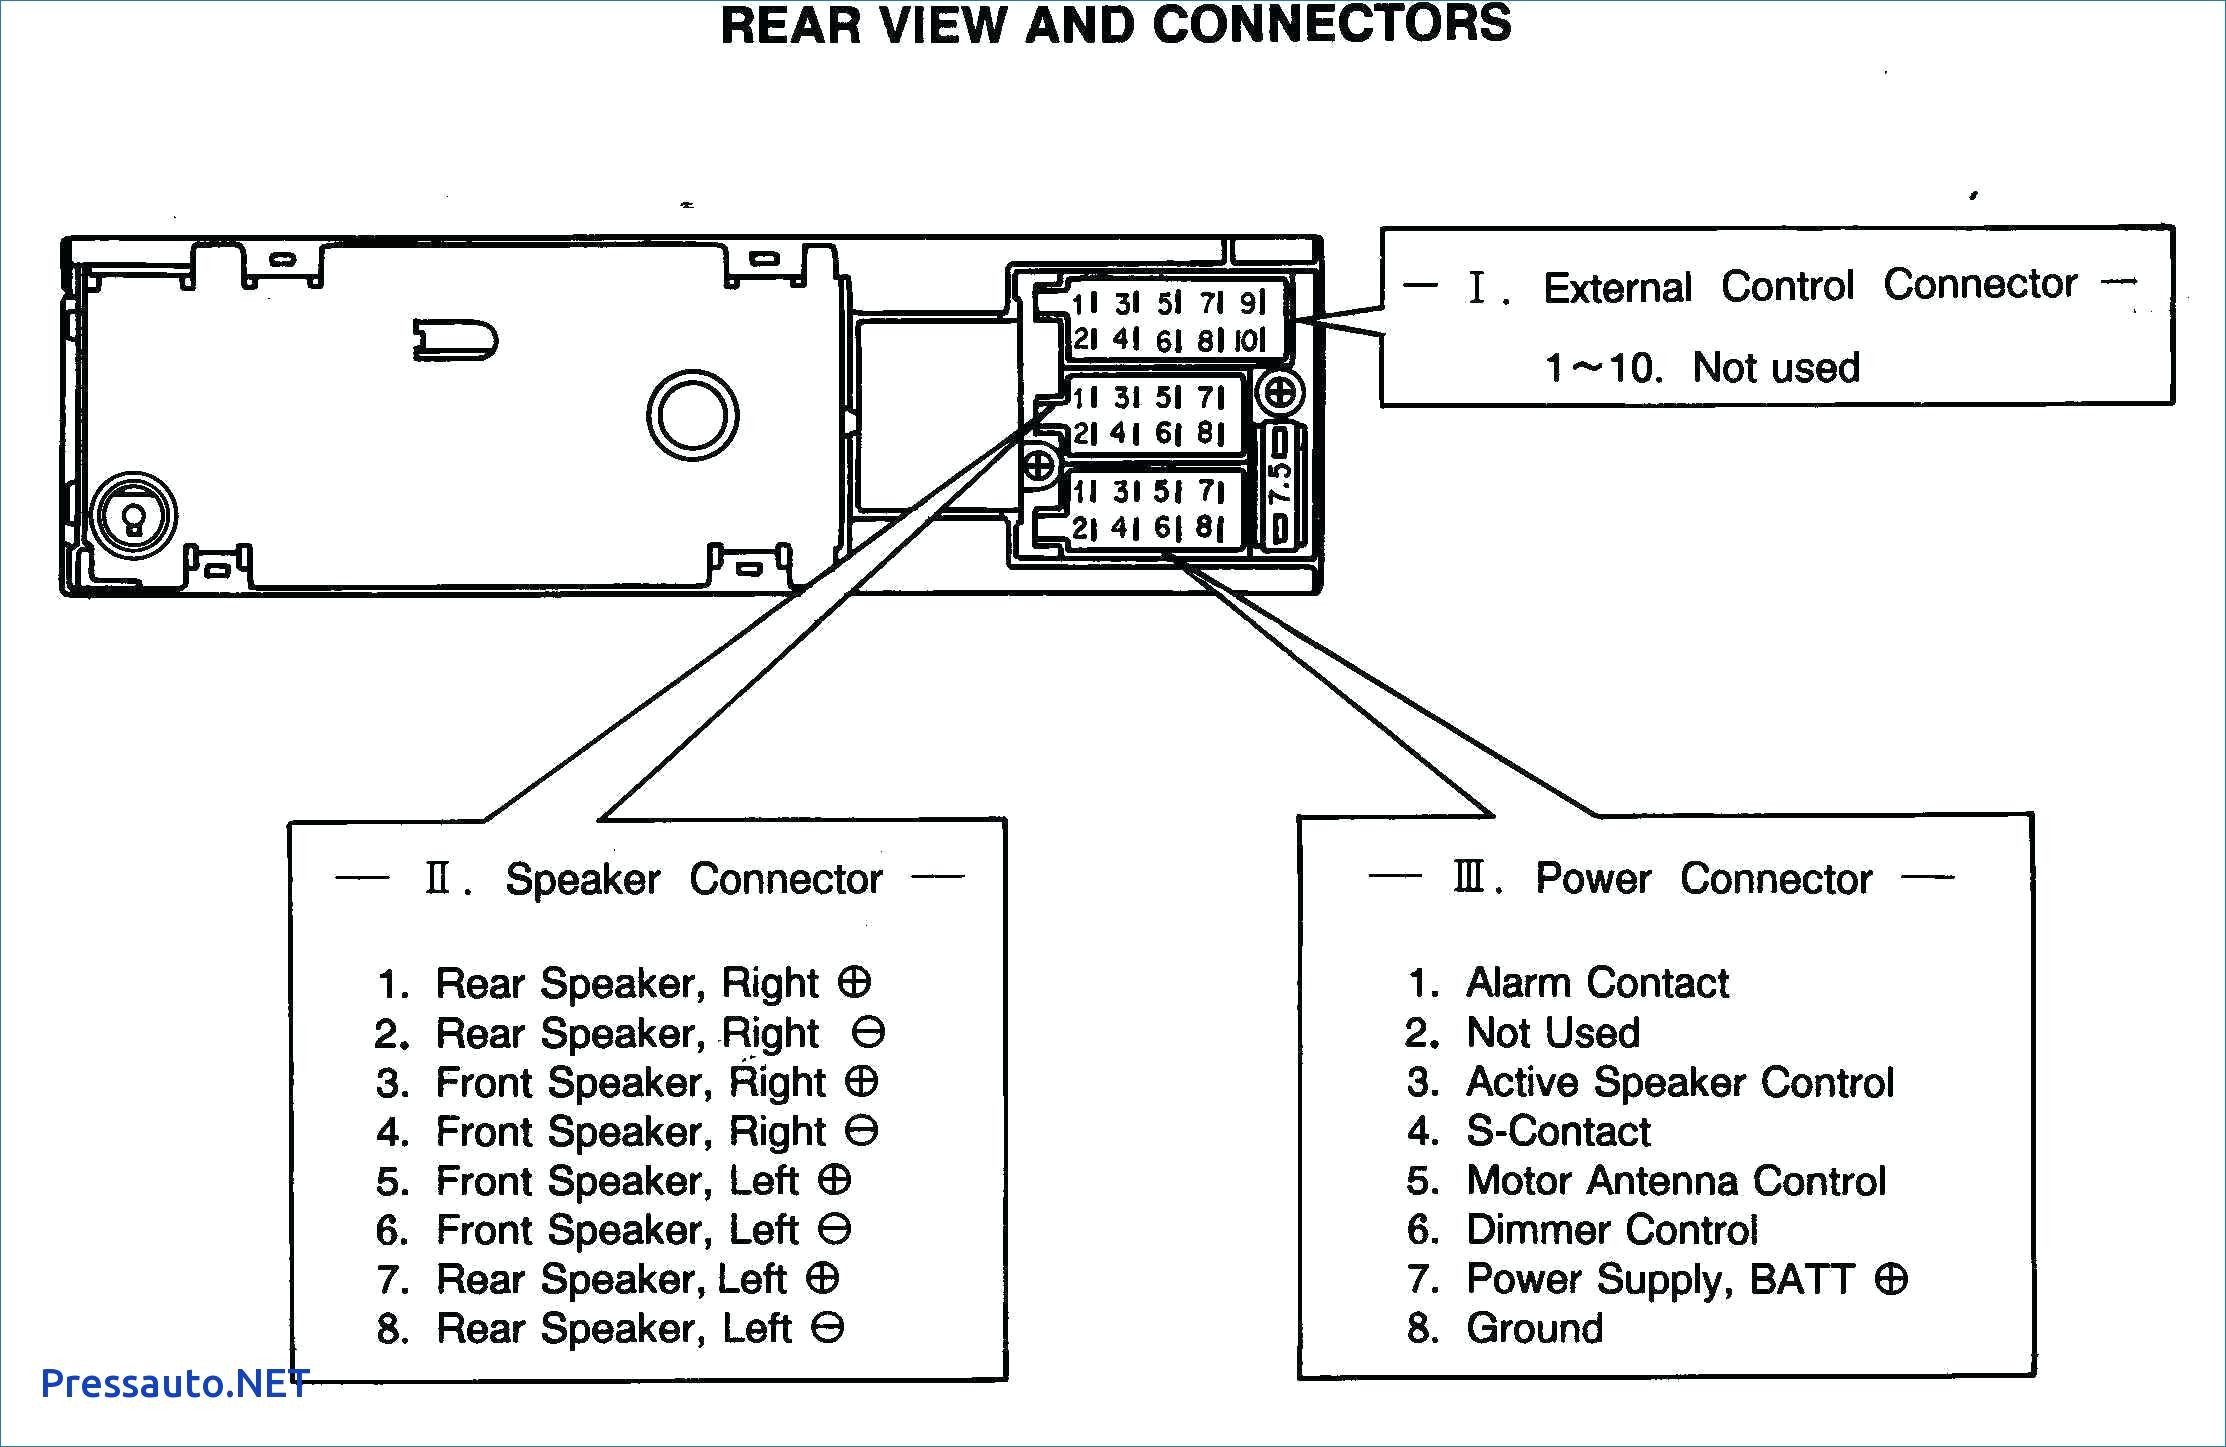 1999 Jeep Cherokee Starter Wiring Diagram Solutions For 2003 Grand 2006 Engine Kia Spectra